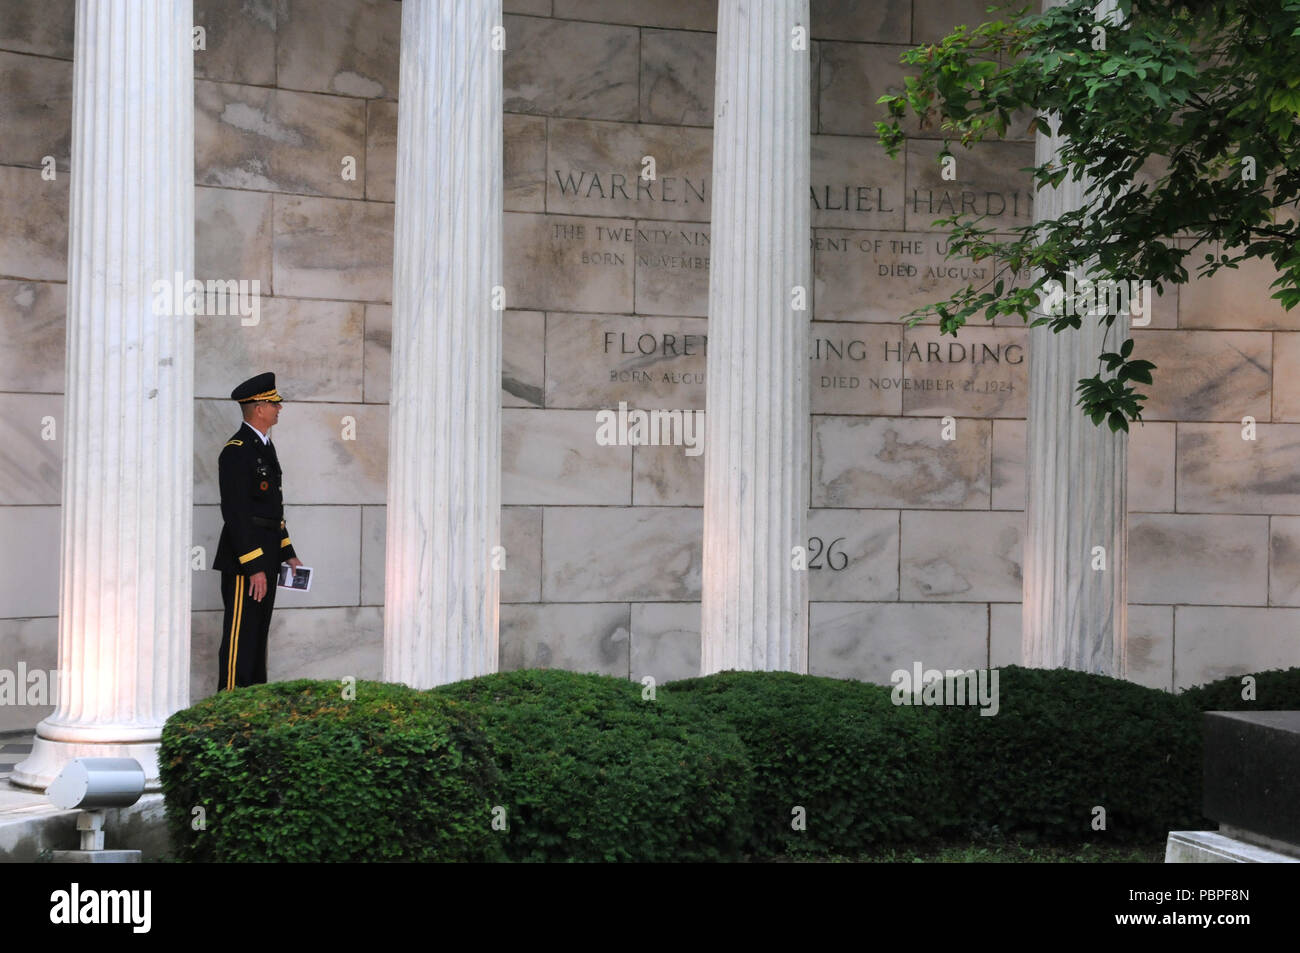 Brigadier Gen. Tony L. Wright, deputy commanding general, 88th Readiness Division, reads the inscription of the Warren G. Harding Tomb in Marion, Ohio, July 21 prior to a wreath laying ceremony honoring the 29th president of the United States. Wright served as President Donald J. Trump's representative for the annual ceremony. Stock Photo